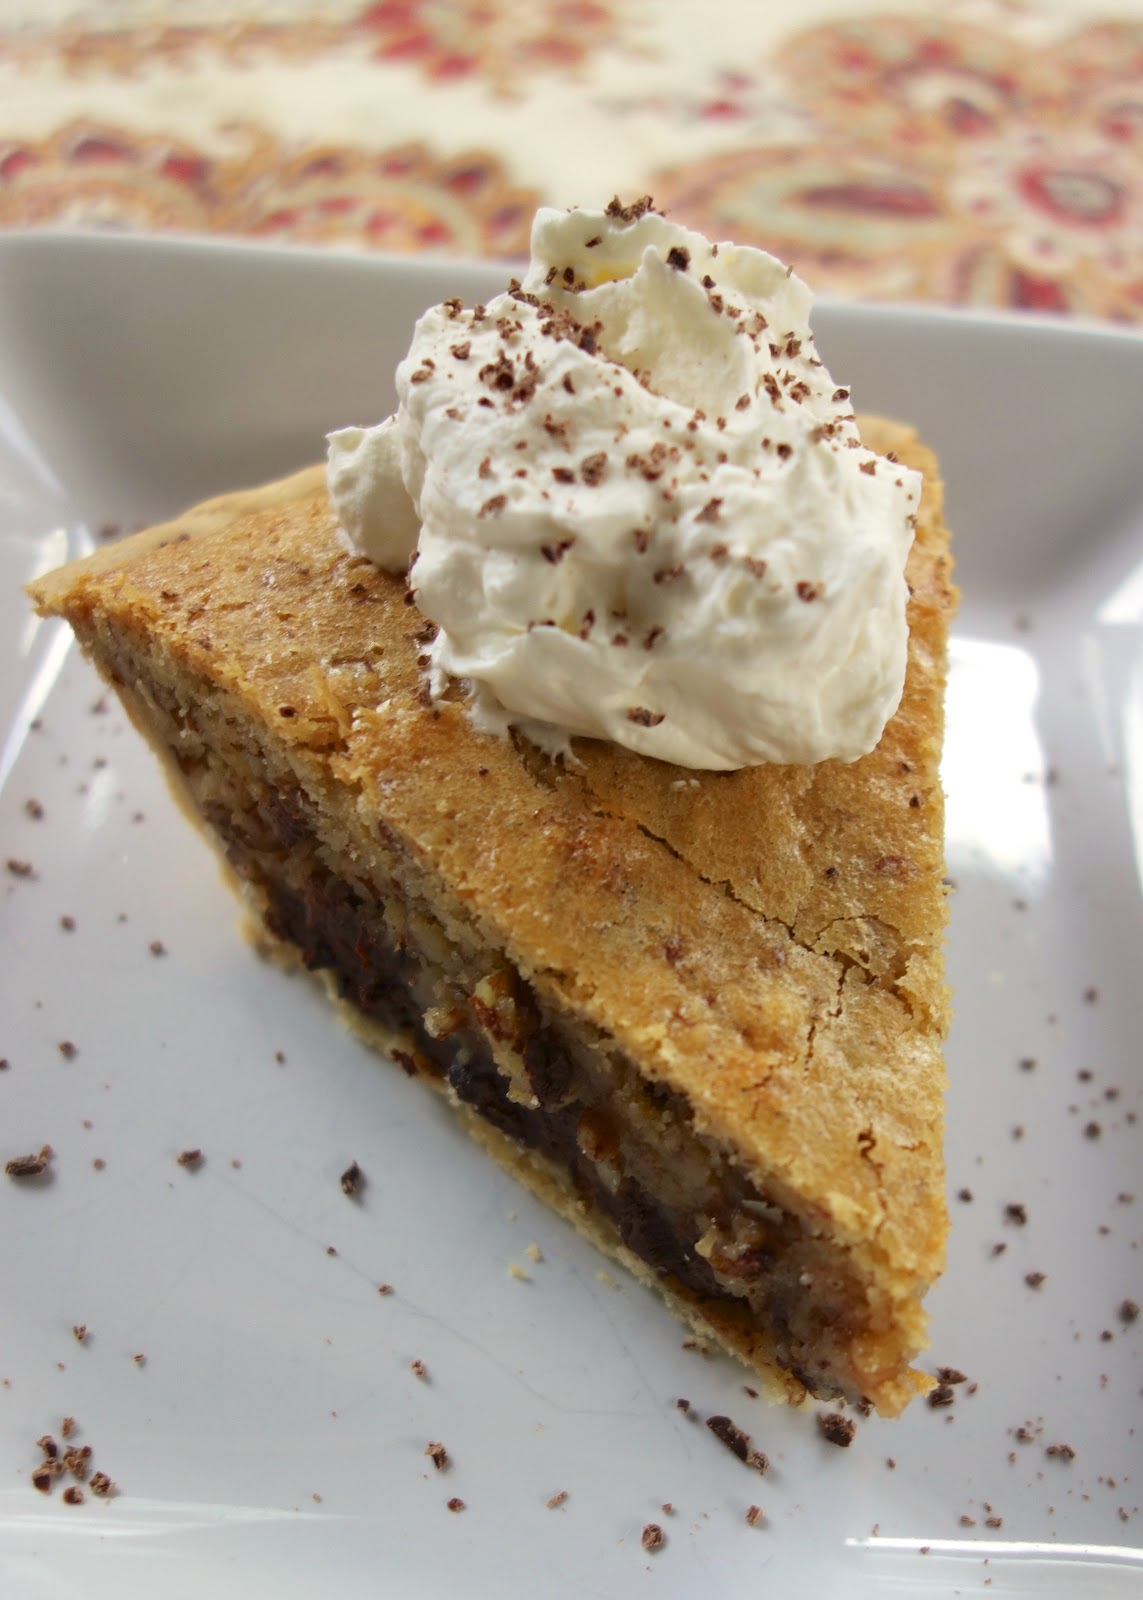 Kentucky Derby Pie with Bourbon Whipped Cream - pie crust filled with butter, sugar, eggs, vanilla, flour, pecans and chocolate chips. Top with some quick homemade bourbon whipped cream. This is ridiculously good! Everyone raves about it!!